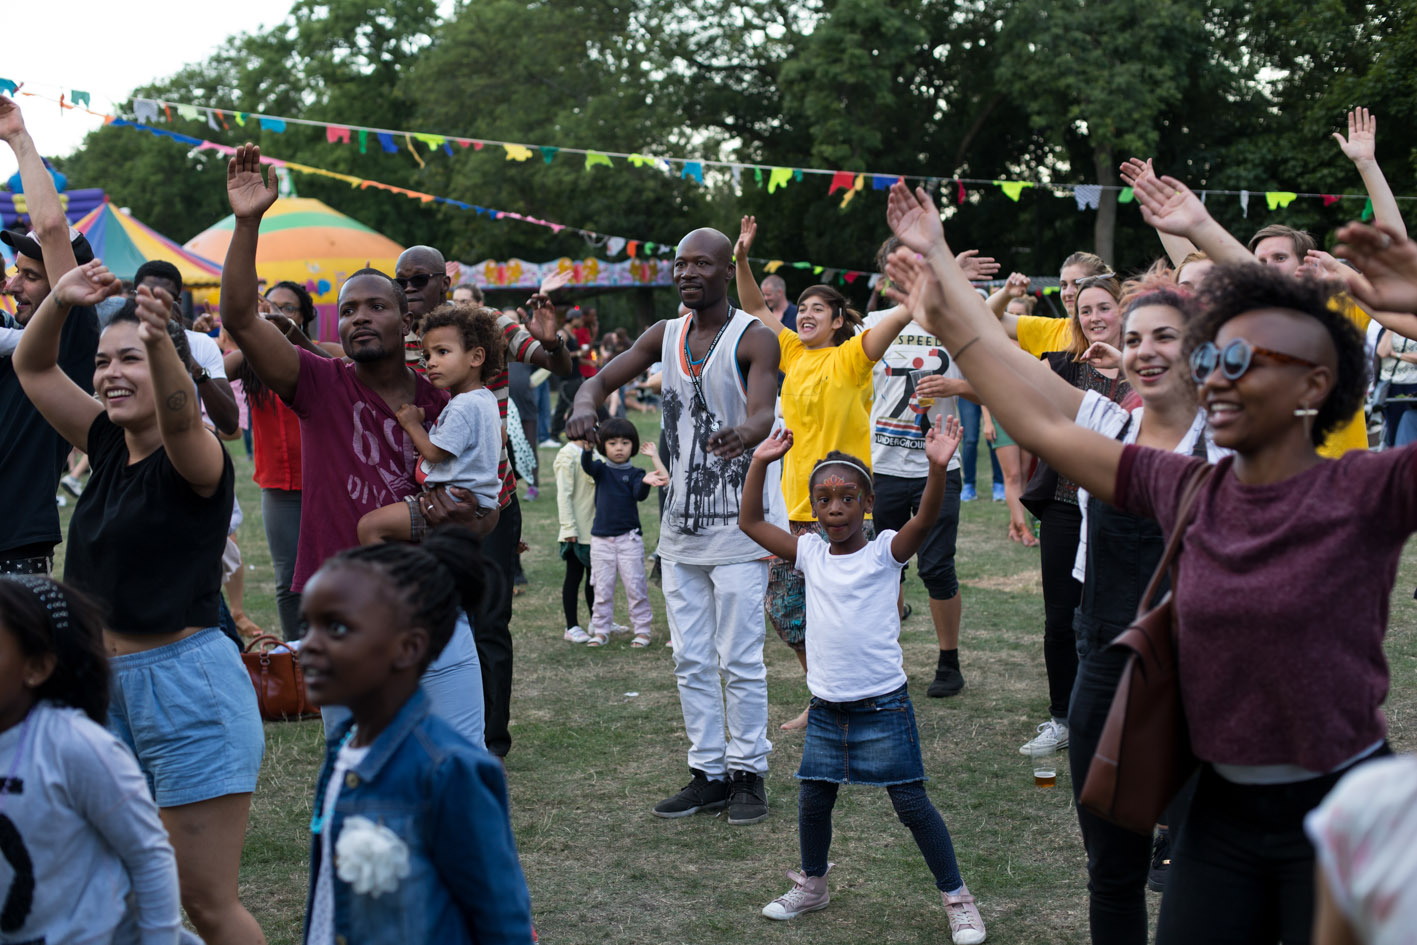 Sparkle Festival returns to Ladywell Fields this Saturday